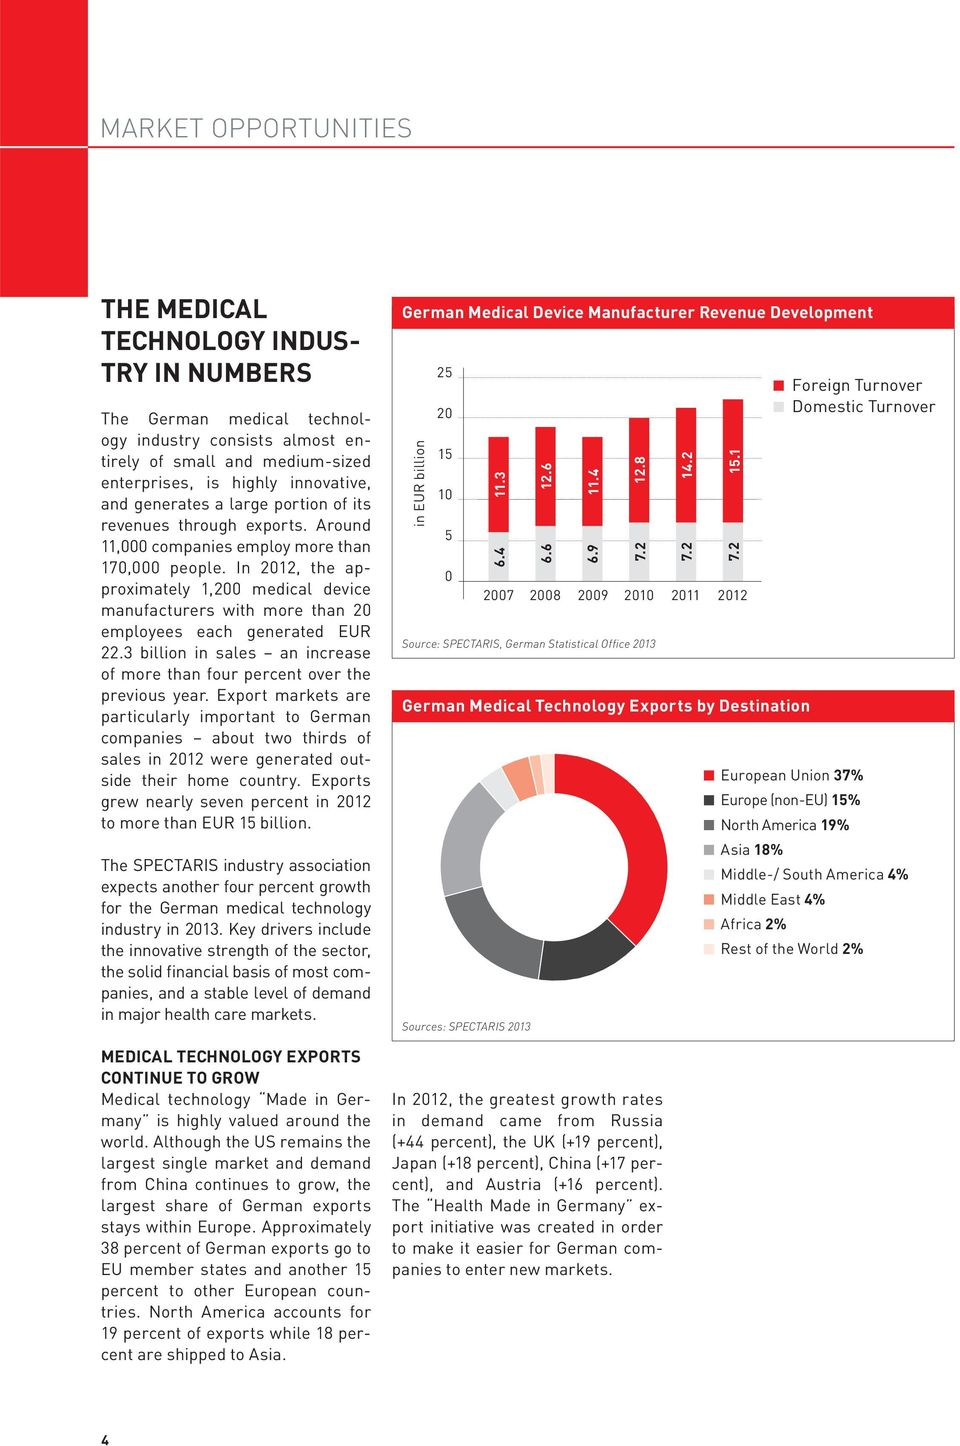 In 2012, the approximately 1,200 medical device manufacturers with more than 20 employees each generated EUR 22.3 billion in sales an increase of more than four percent over the previous year.